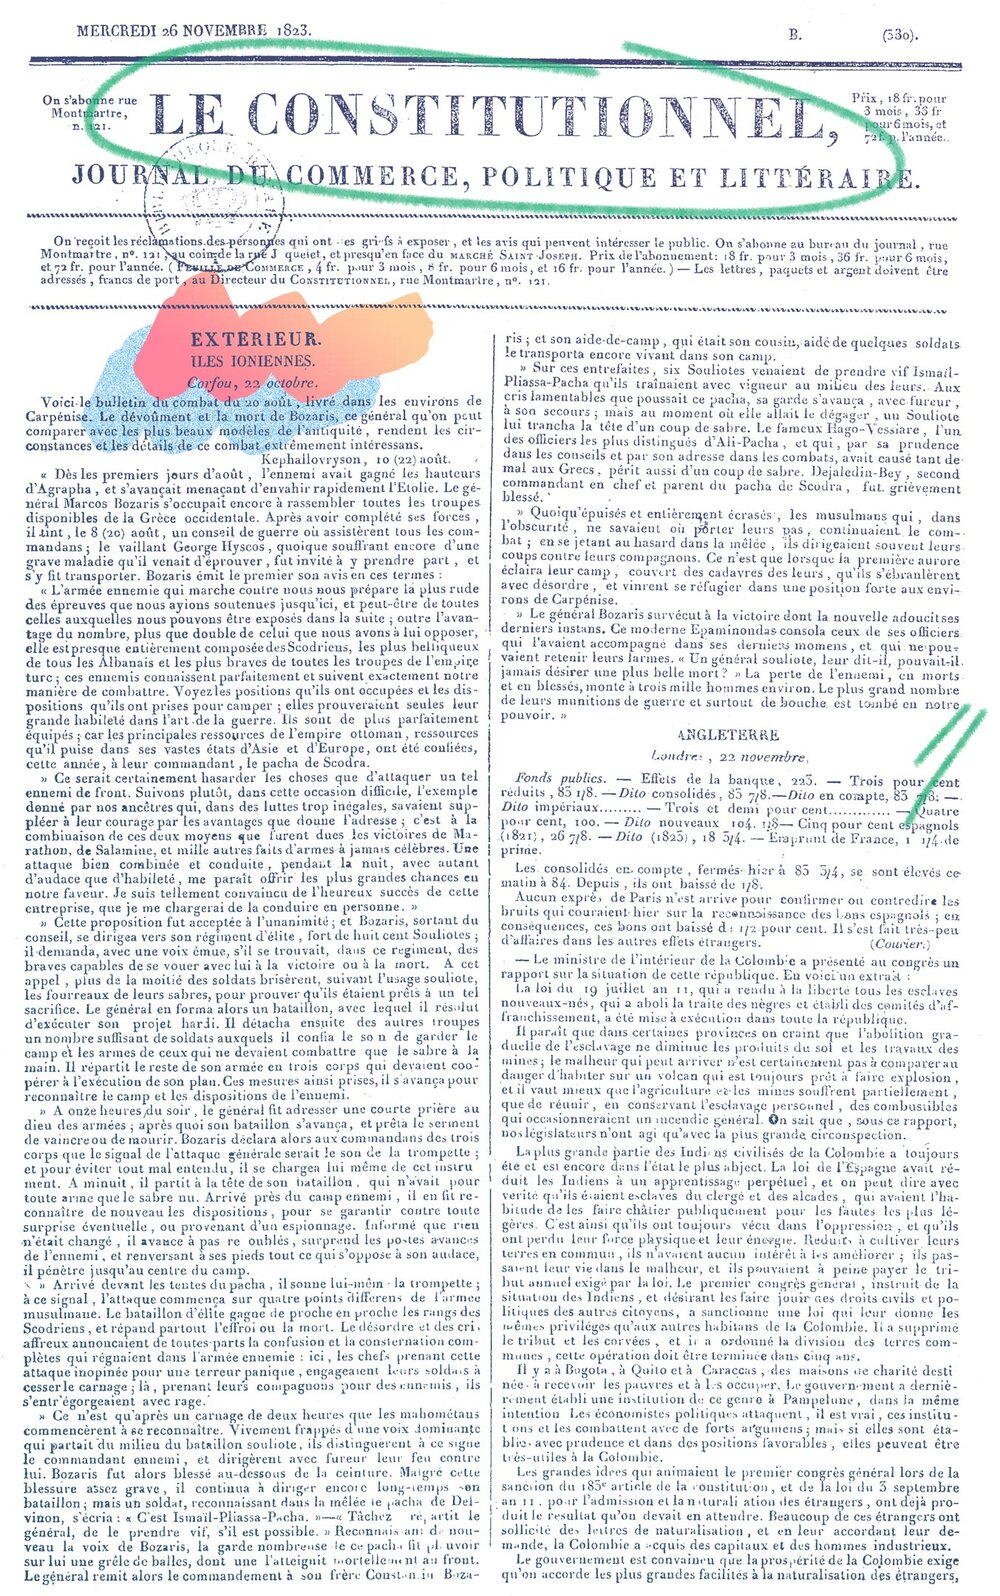 Le Constitutionnel , 26 Νοεμβρίου 1823 - πηγή: RetroNews-BnF